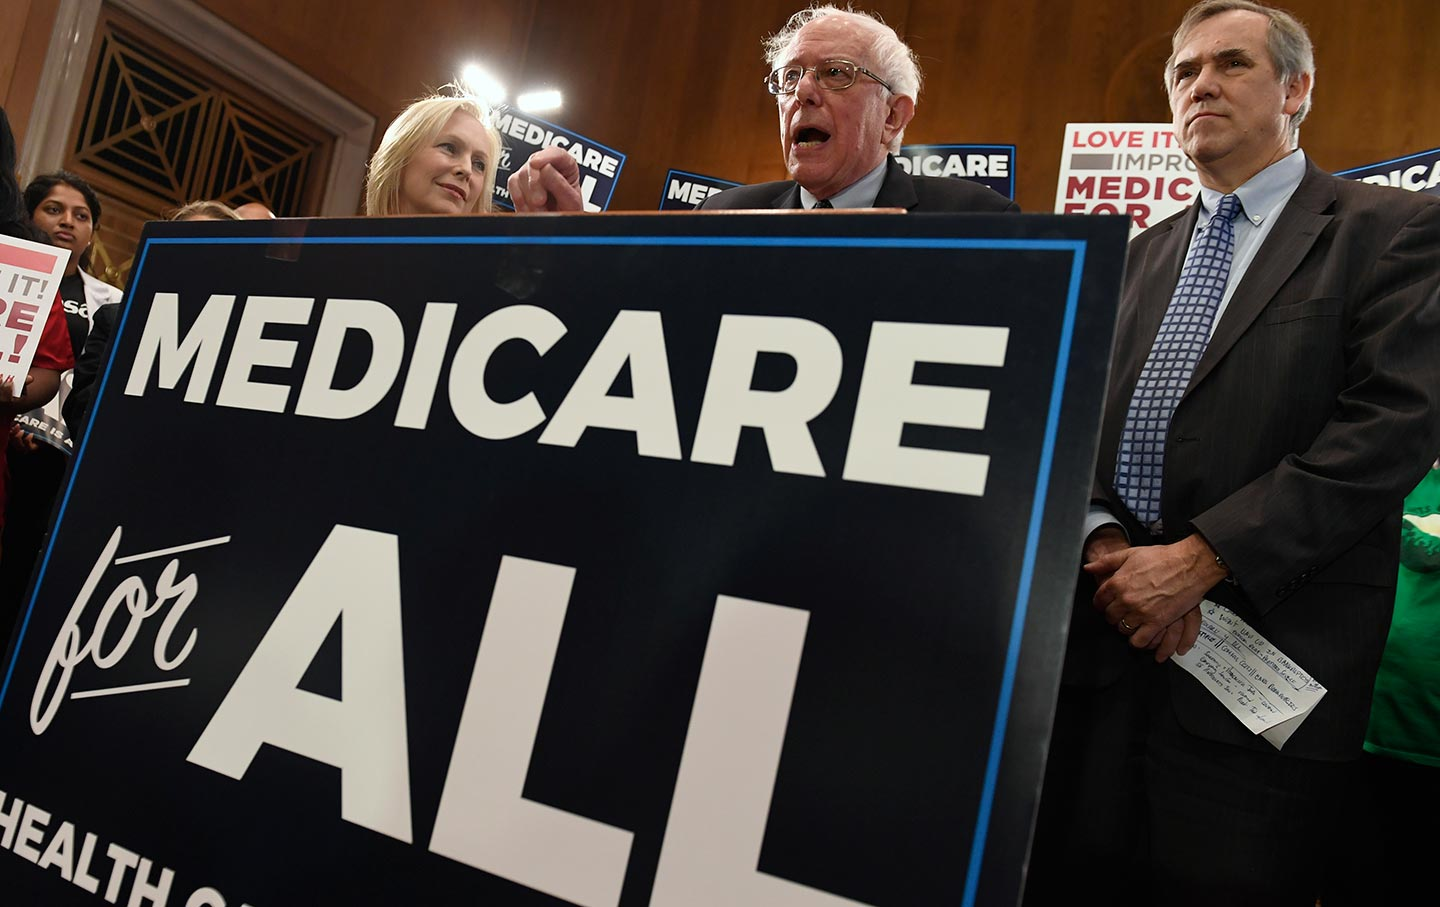 Bernie Sanders & Kristin Gillibrand Medicare for All